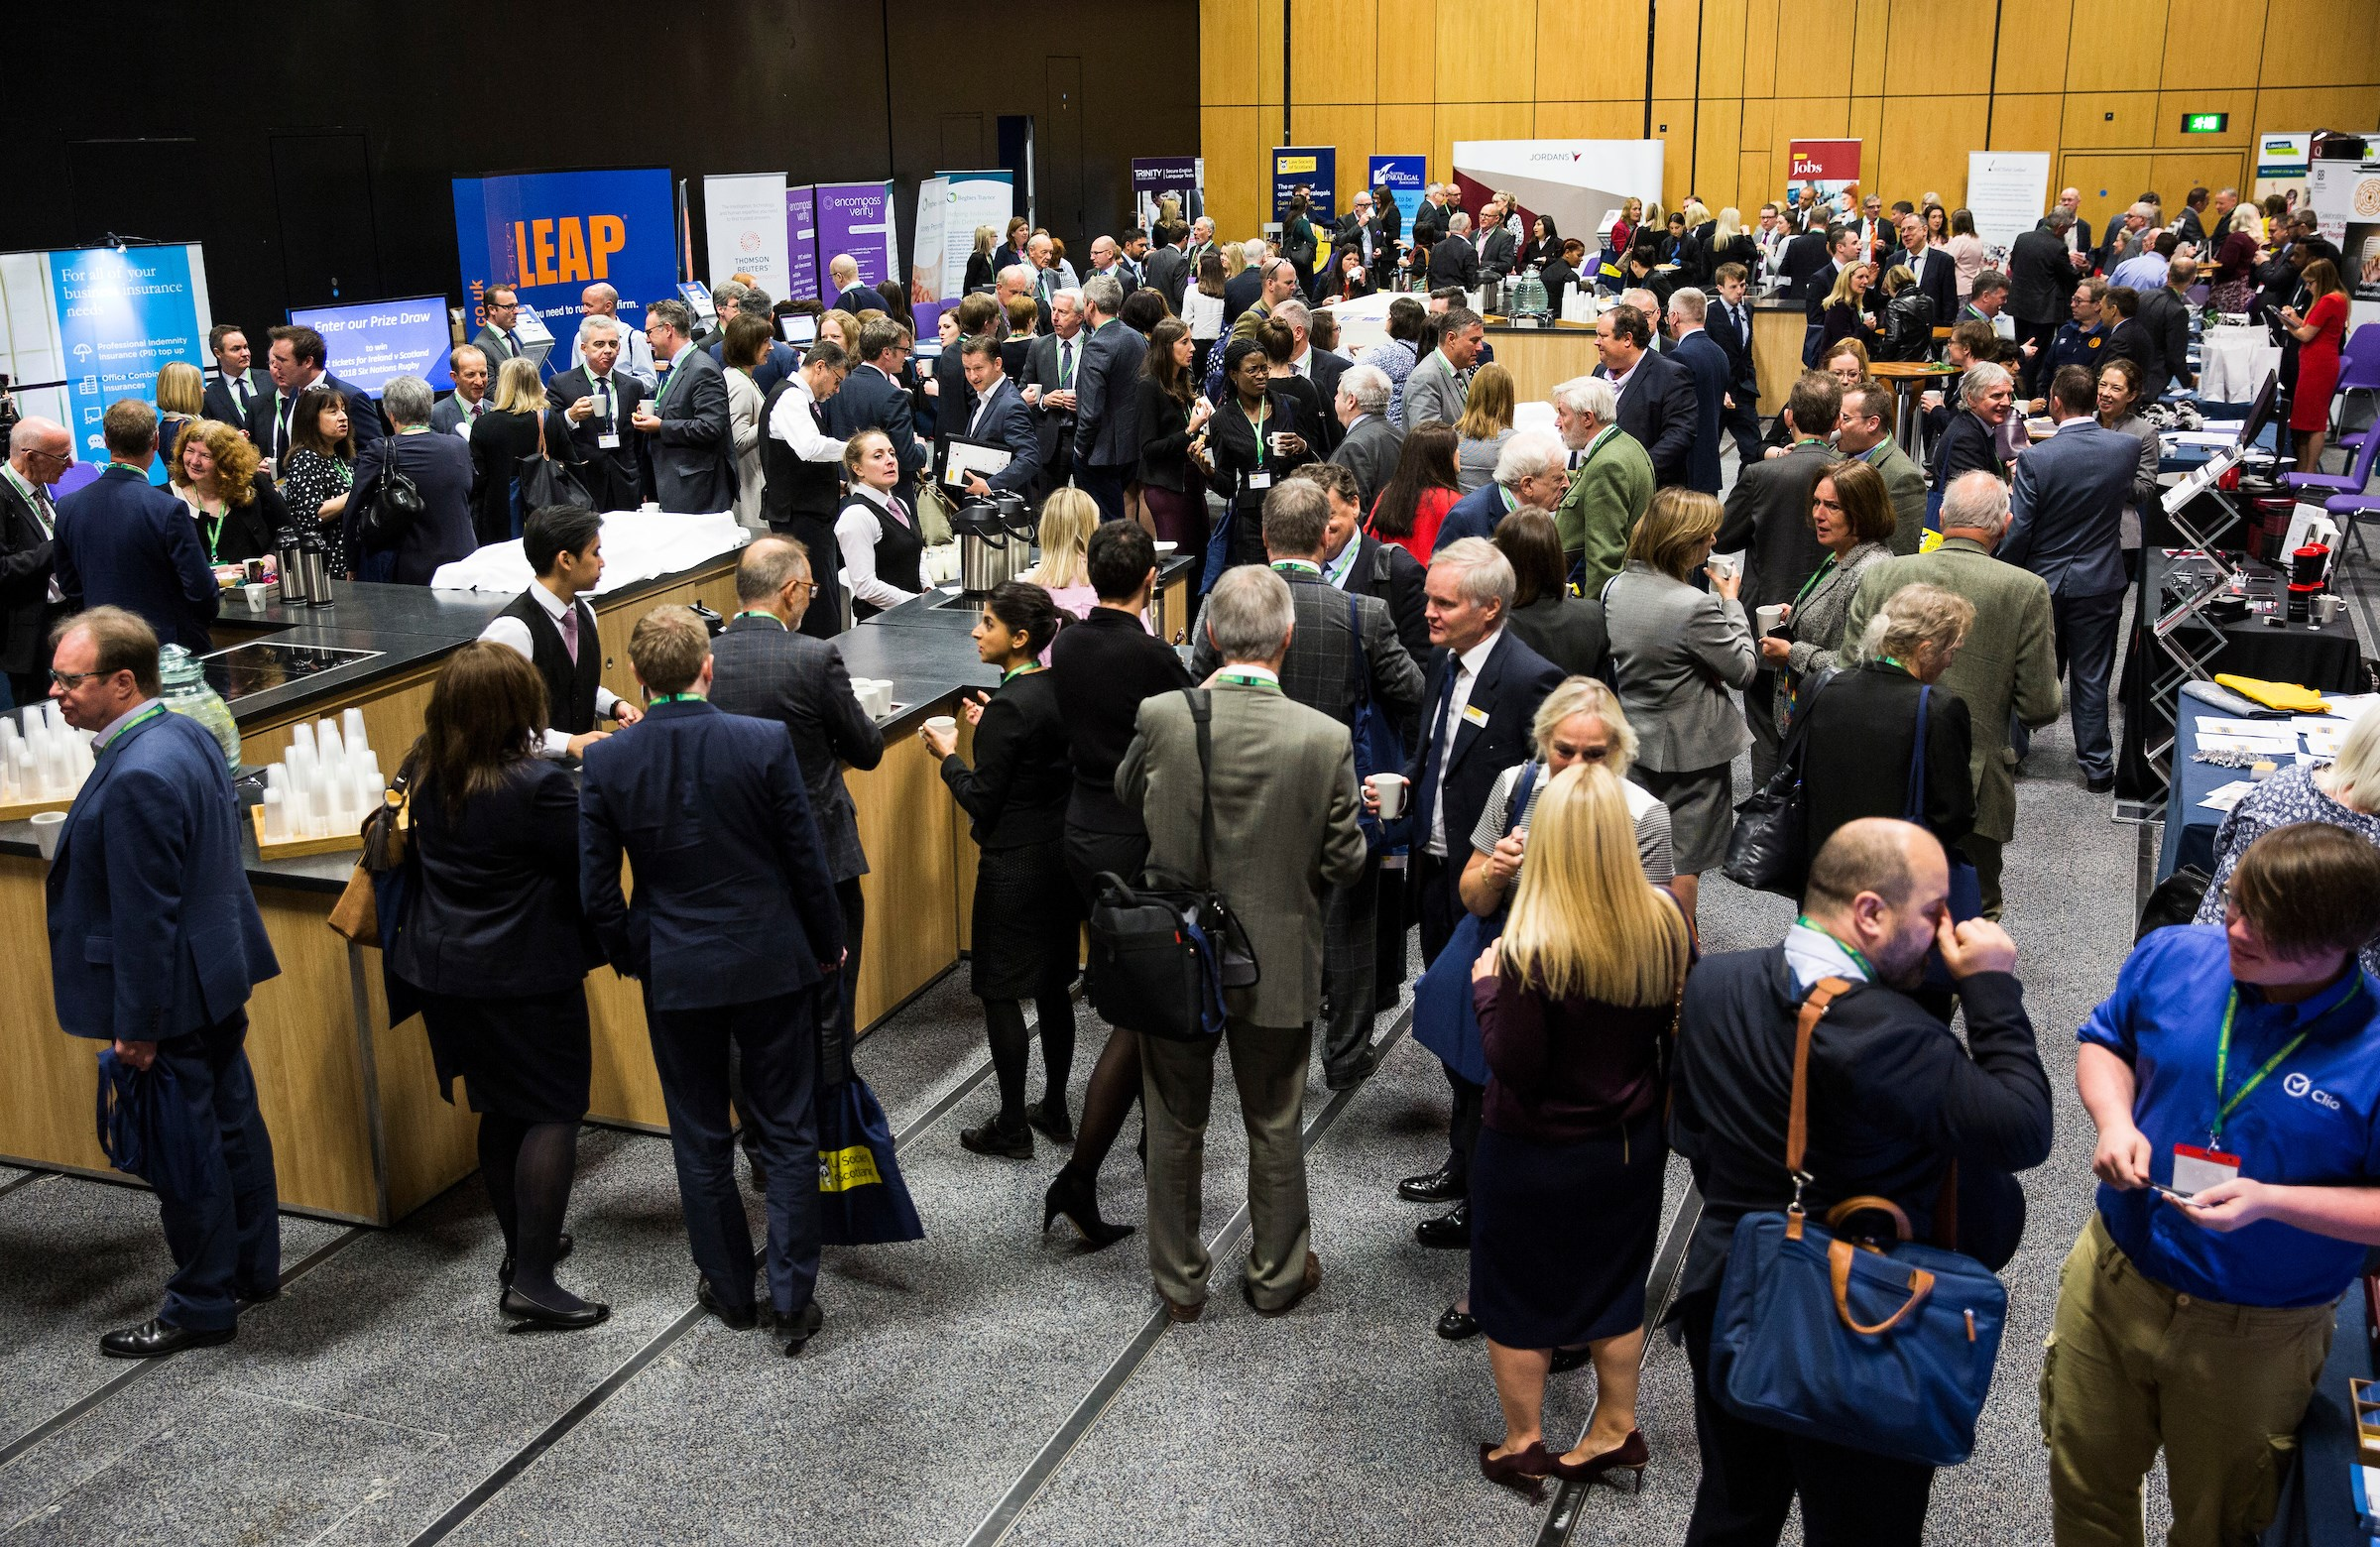 Refreshments and networking in the exhibition area